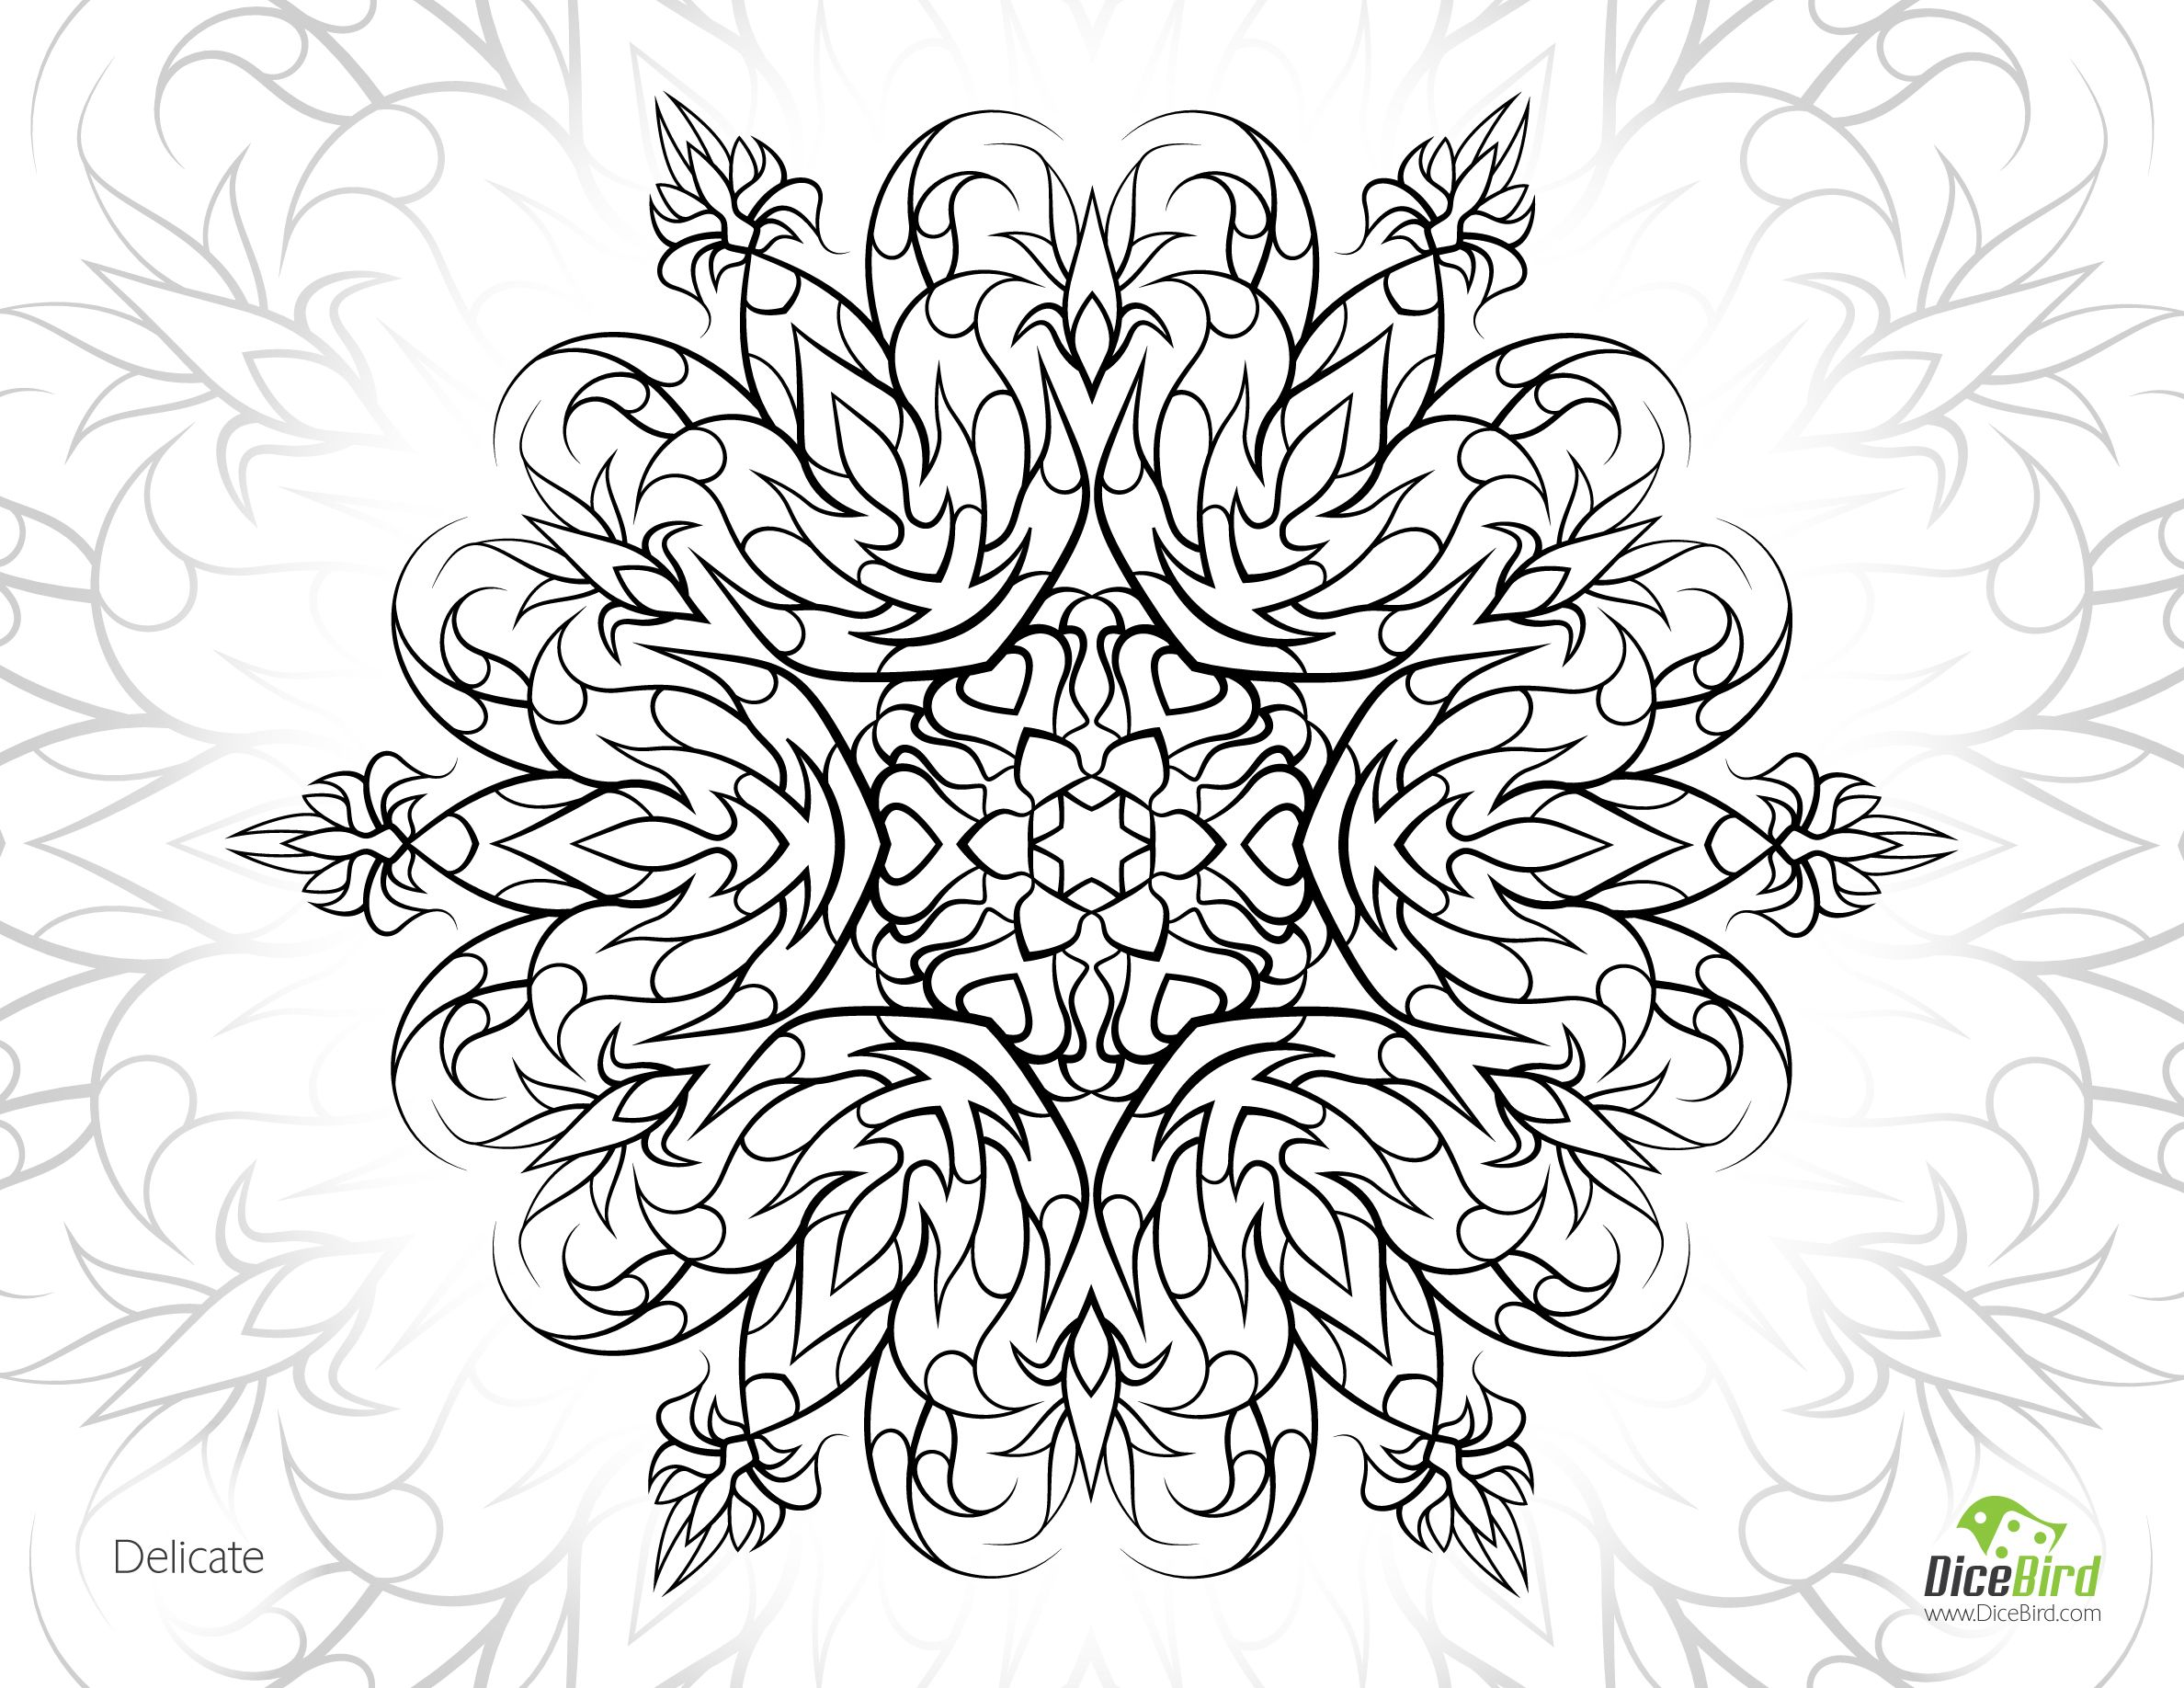 2376x1836 Delicate Flower Free Printable Coloring Pages Adults Only Mental